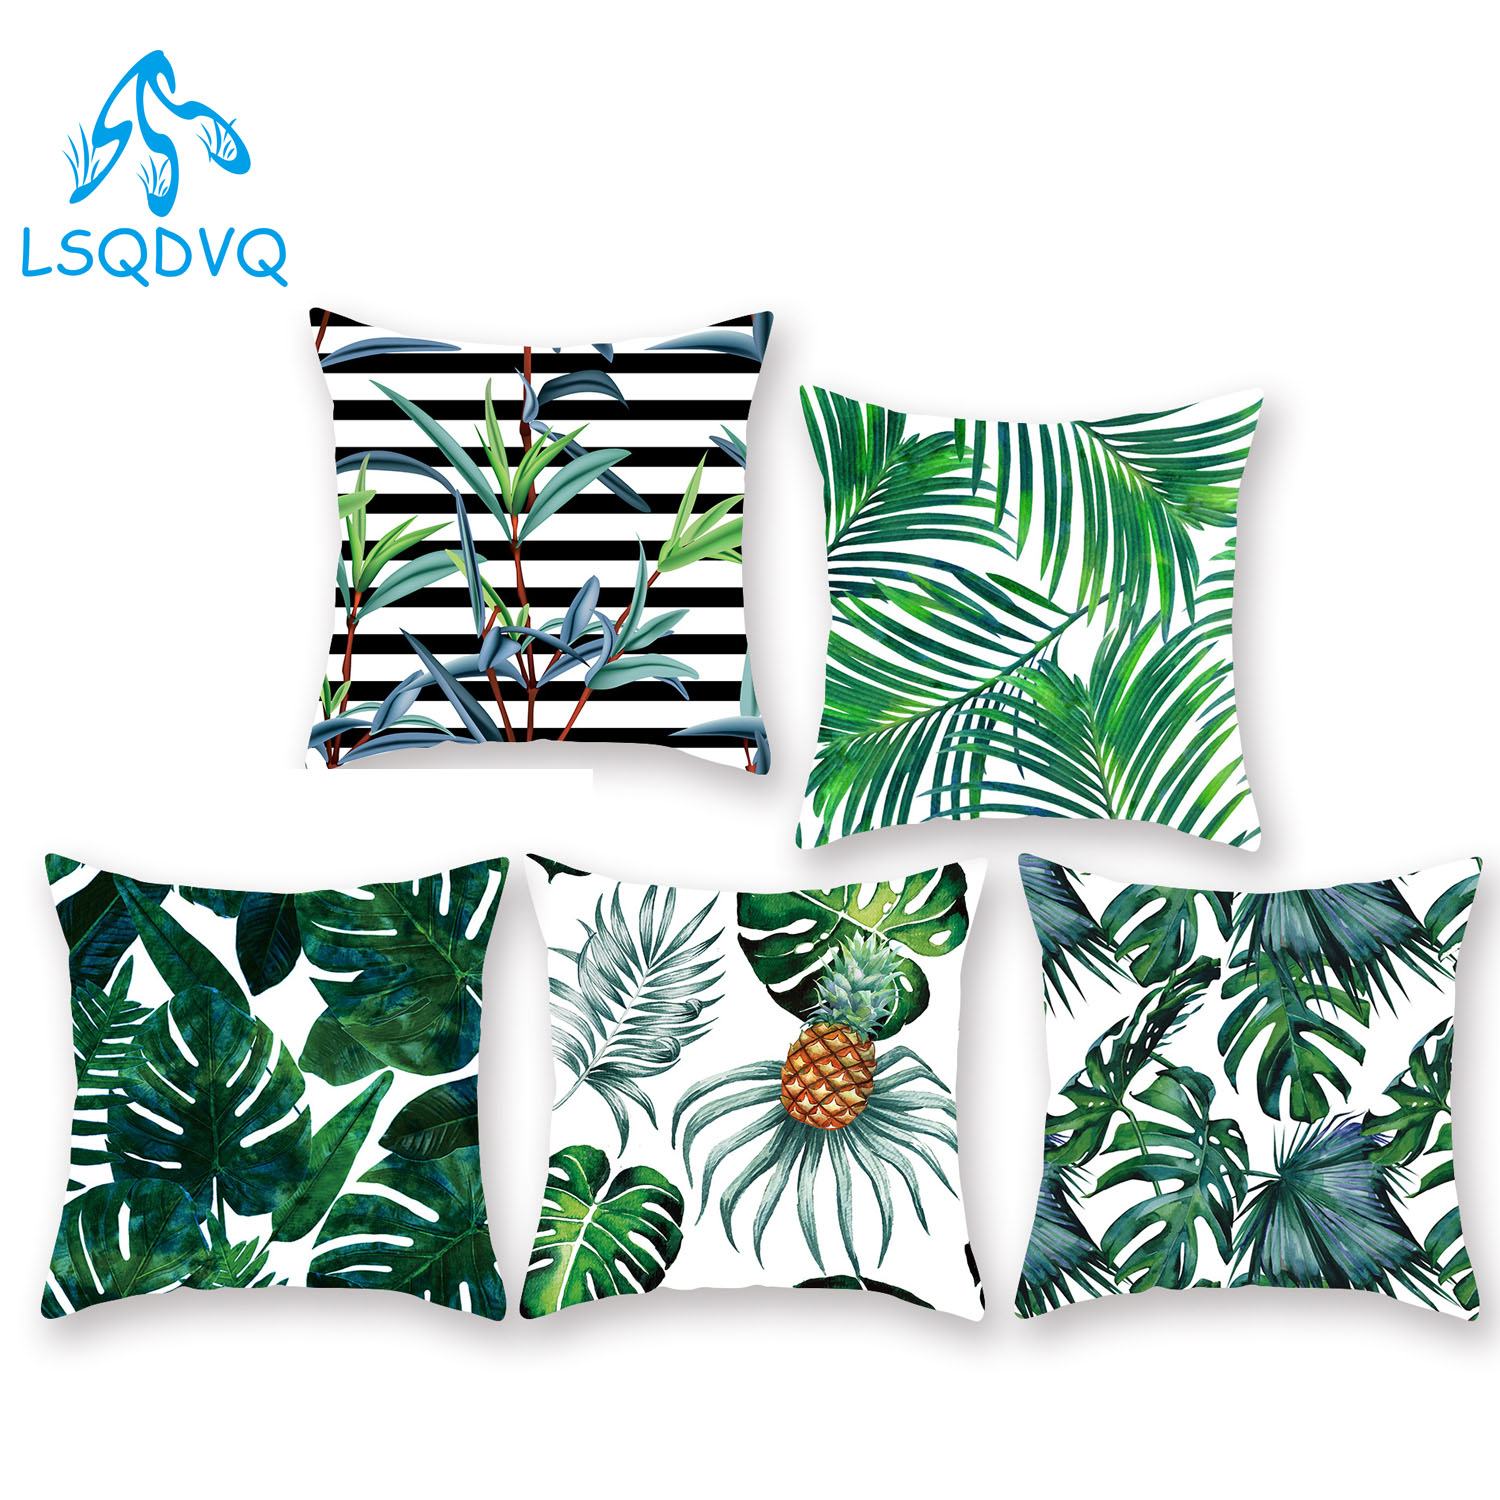 Diy Custom Tropical Green Leaves Decorative Throw Pillow Case 100% Polyester 45x45cm Cushion Cover For Sofa Car Home Decor